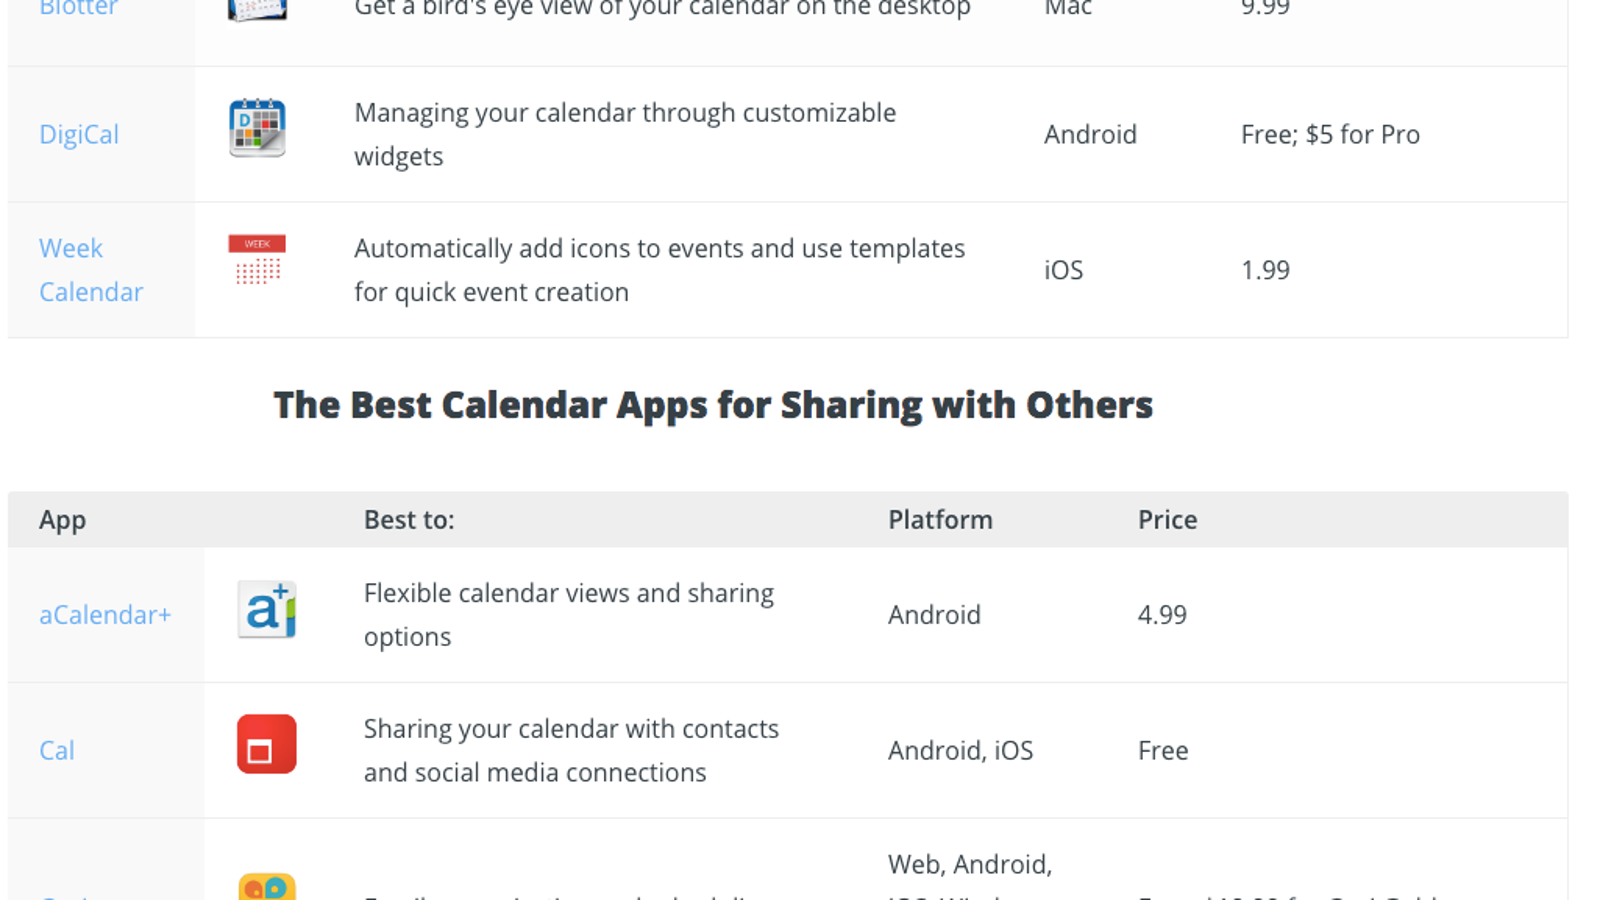 Use This Cheat Sheet to Choose the Best Calendar App for You